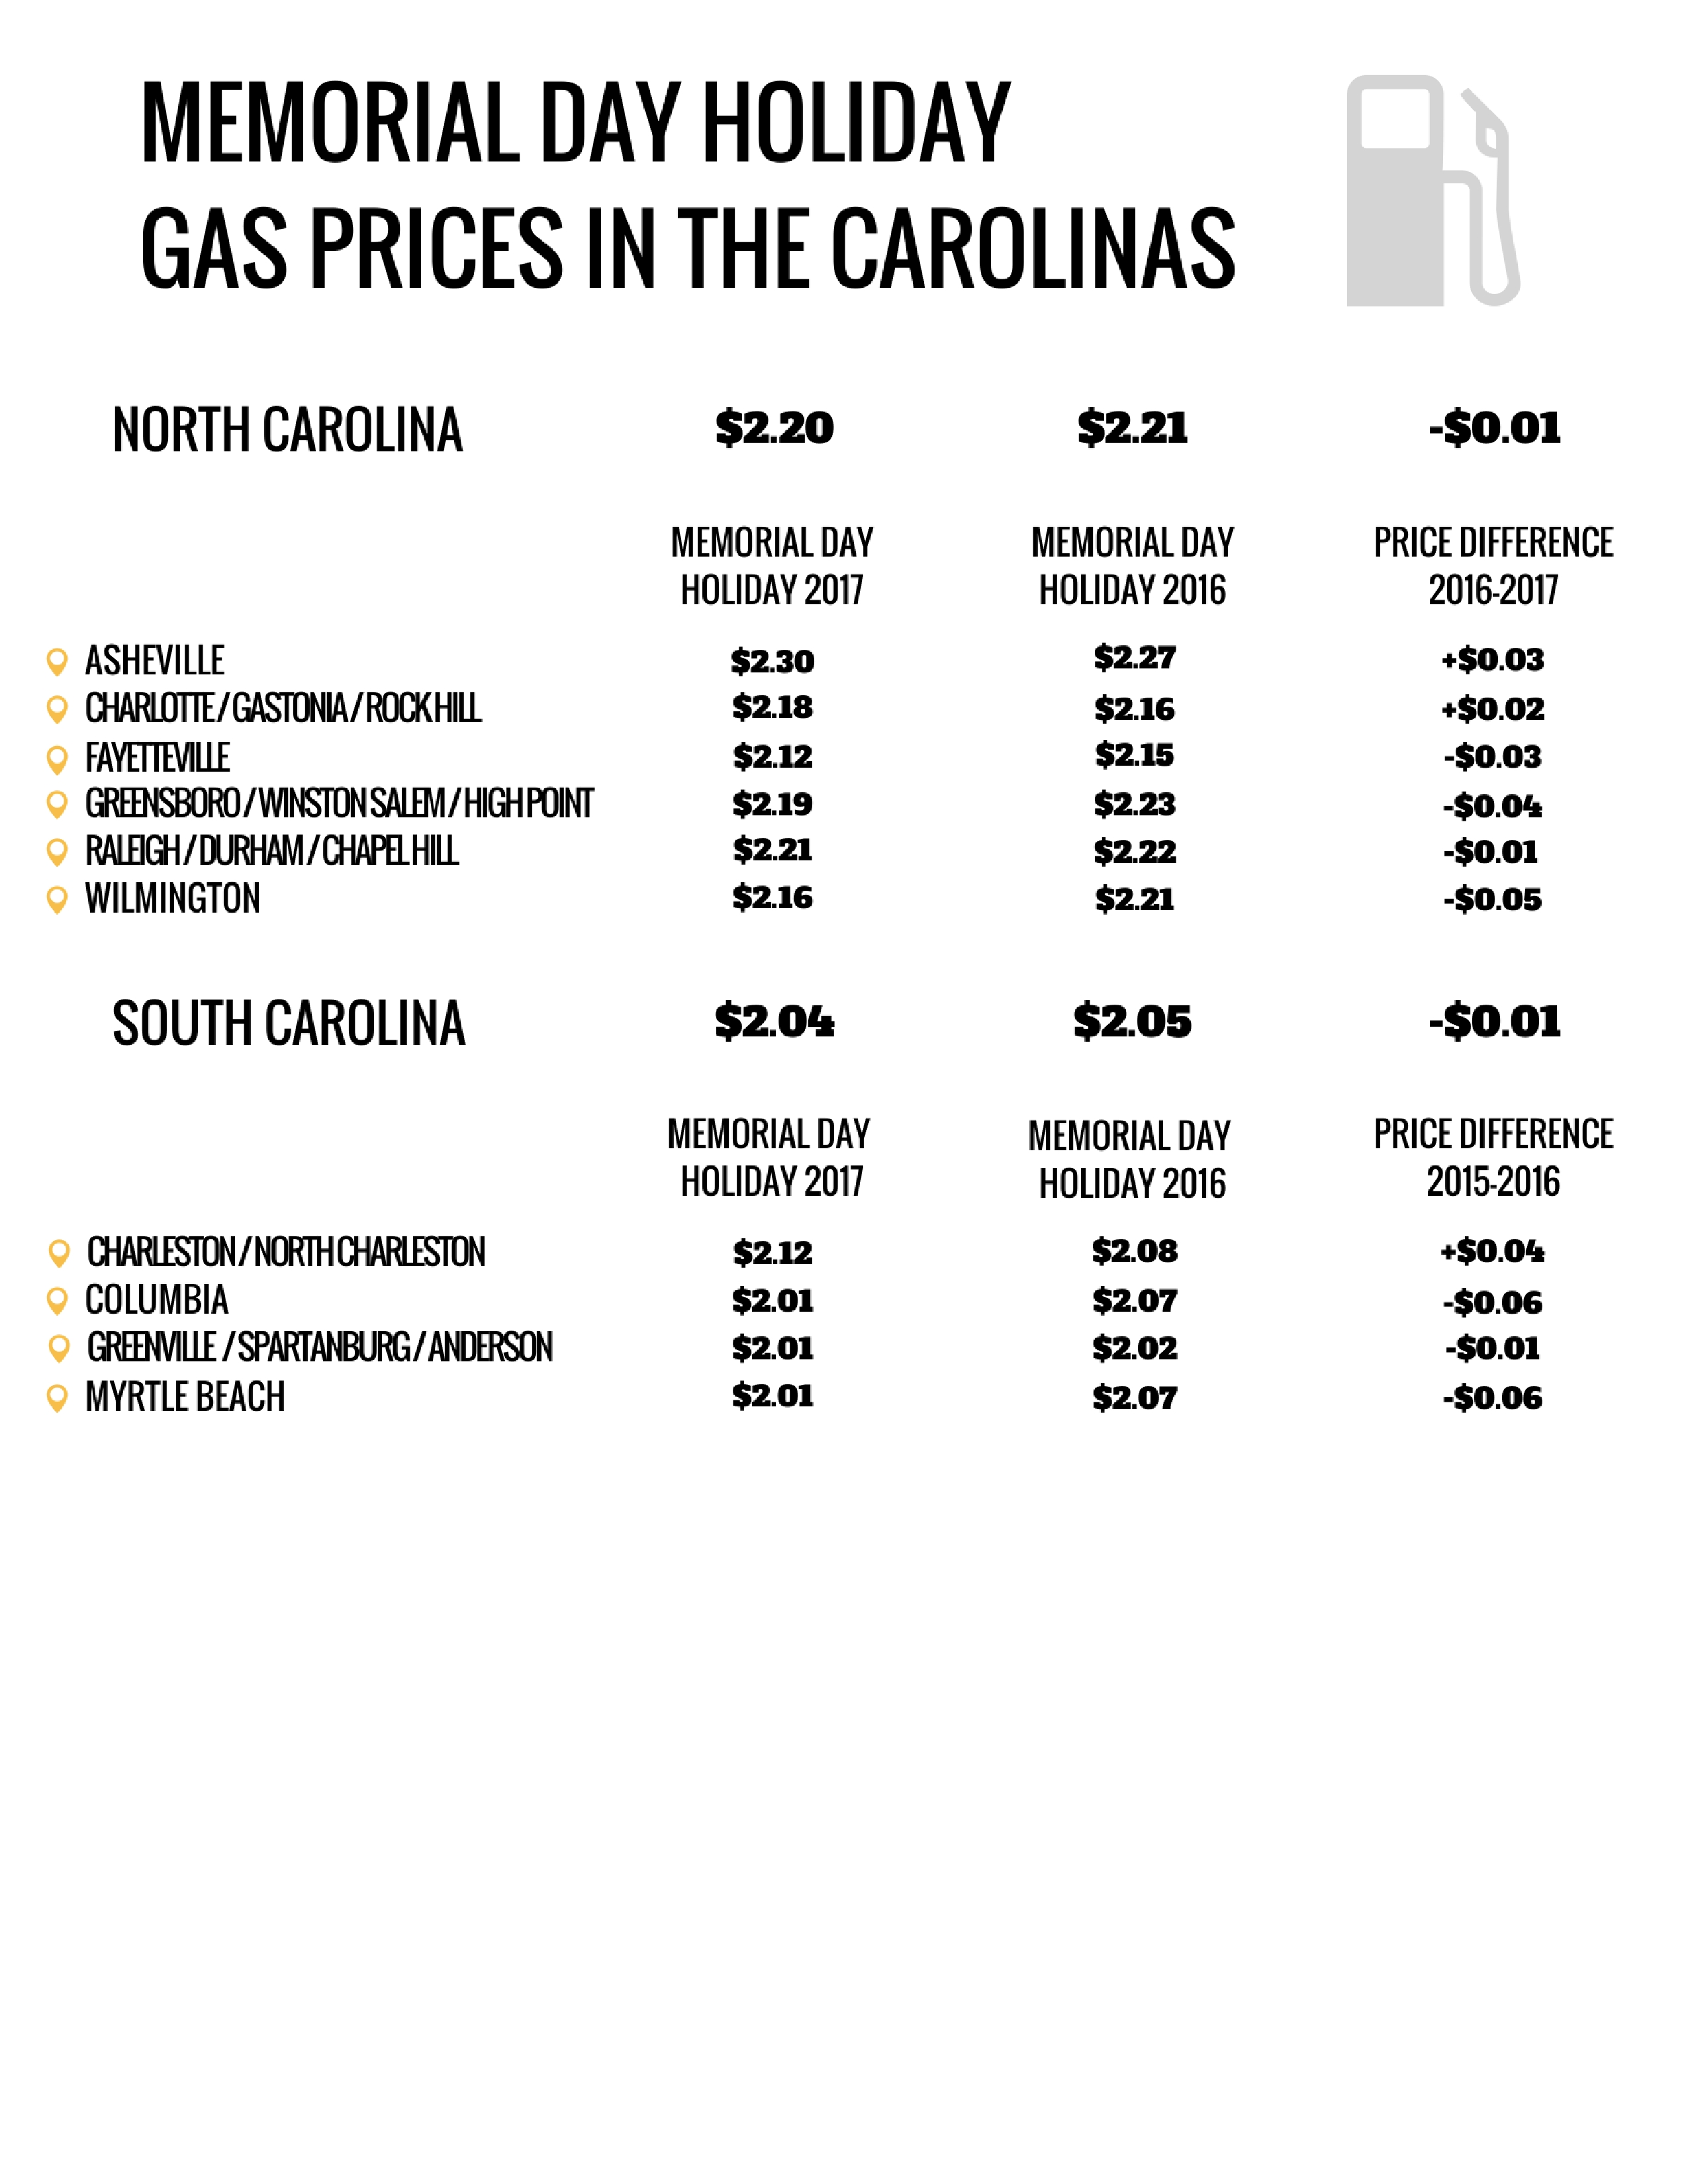 MEMORIAL-DAY-HOLIDAY-GAS-PRICES-IN-THE-CAROLINAS-2.jpg